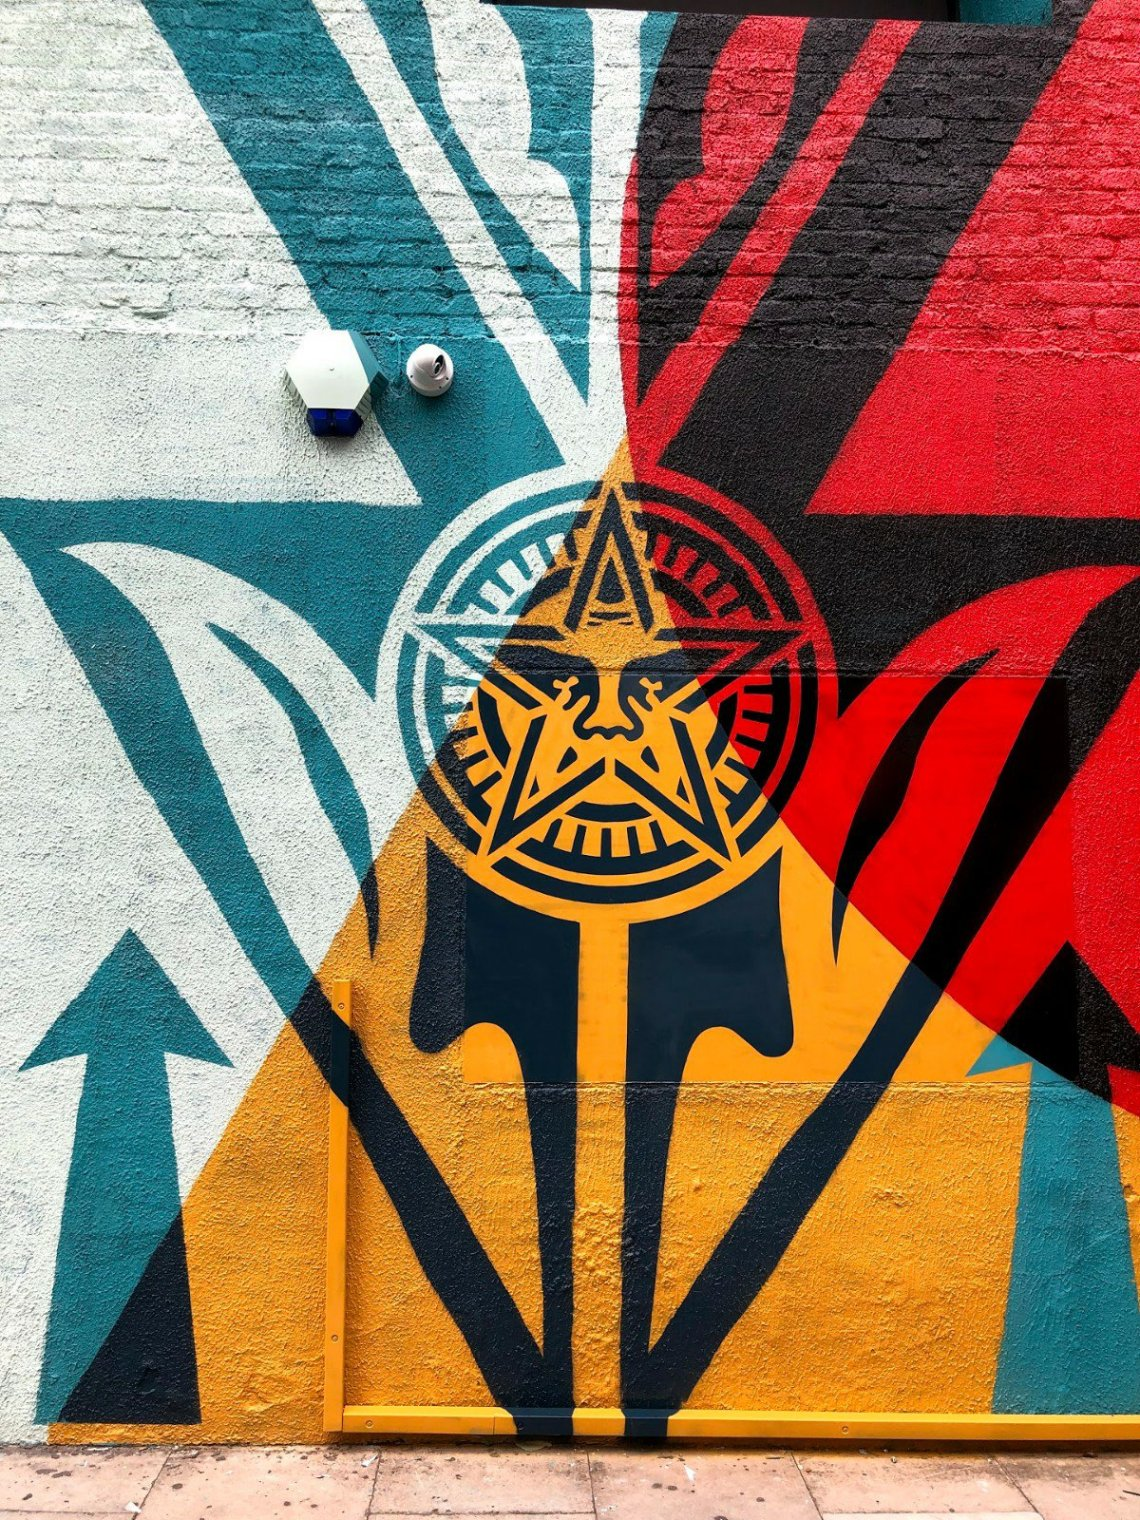 Obey symbol by Shepard Fairey in London